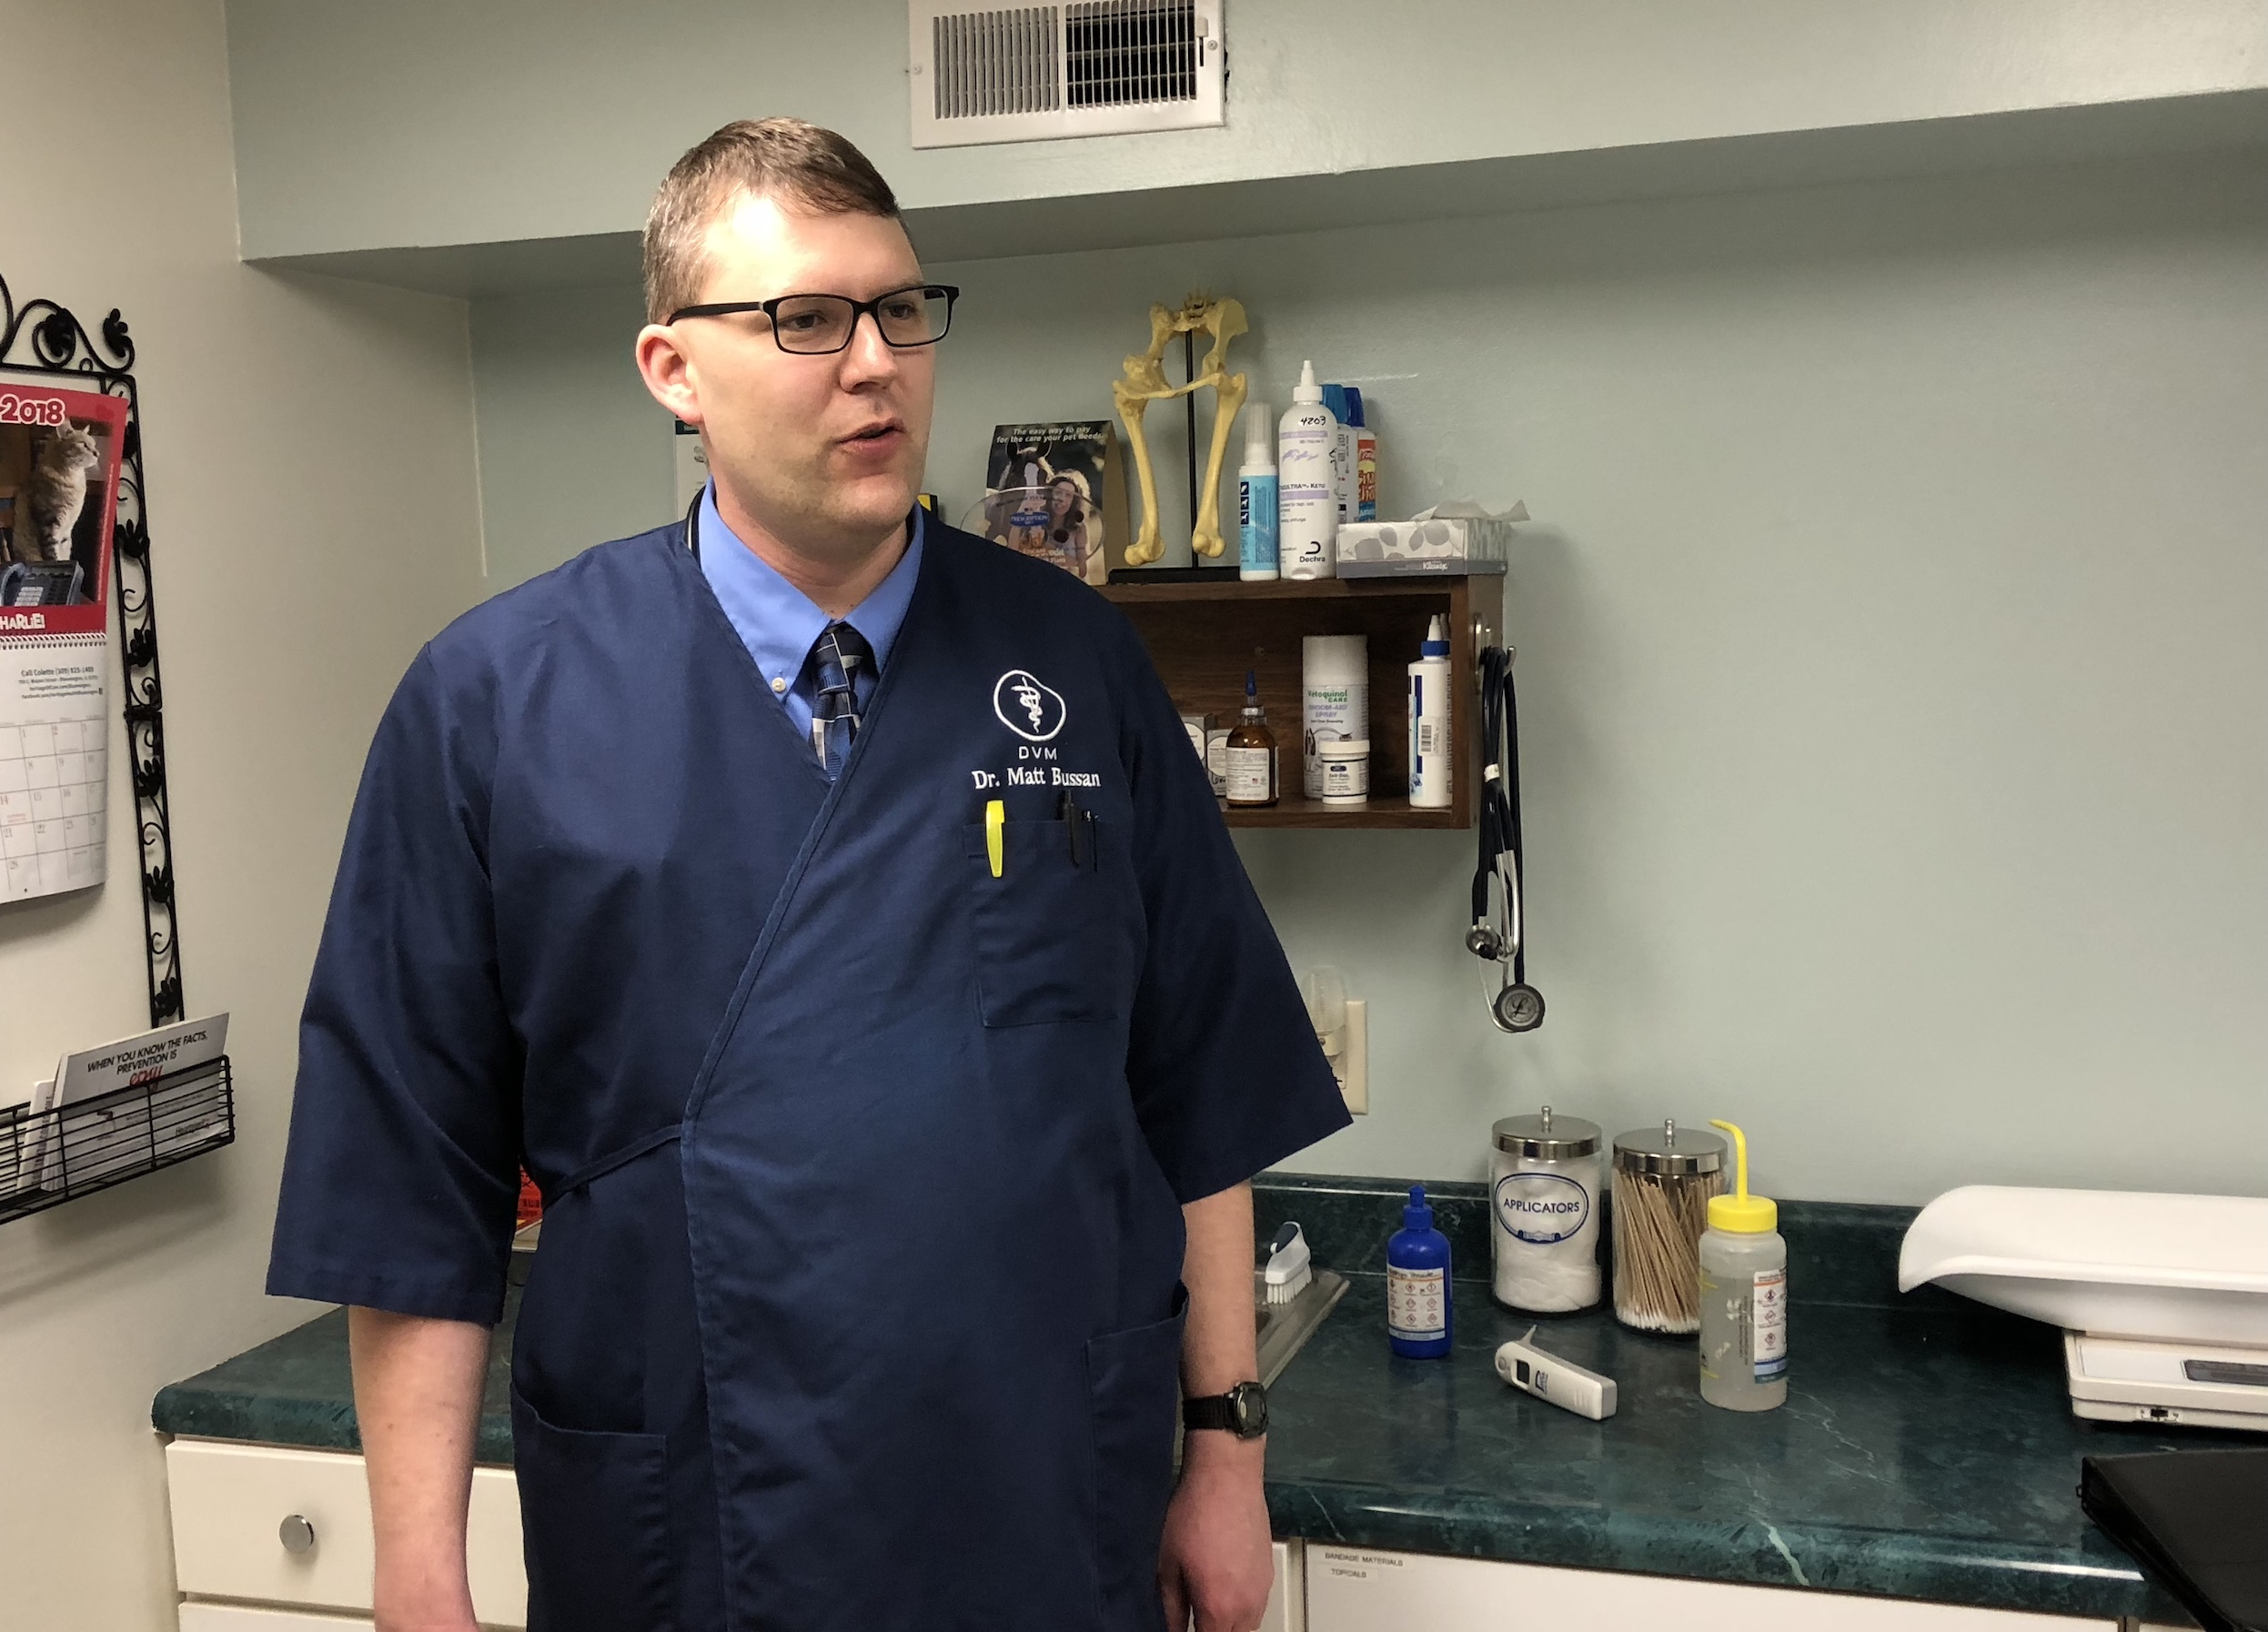 Town & Country veterinarian Matt Bussan graduated from the University of Illinois College of Veterinary Medicine in 2004.